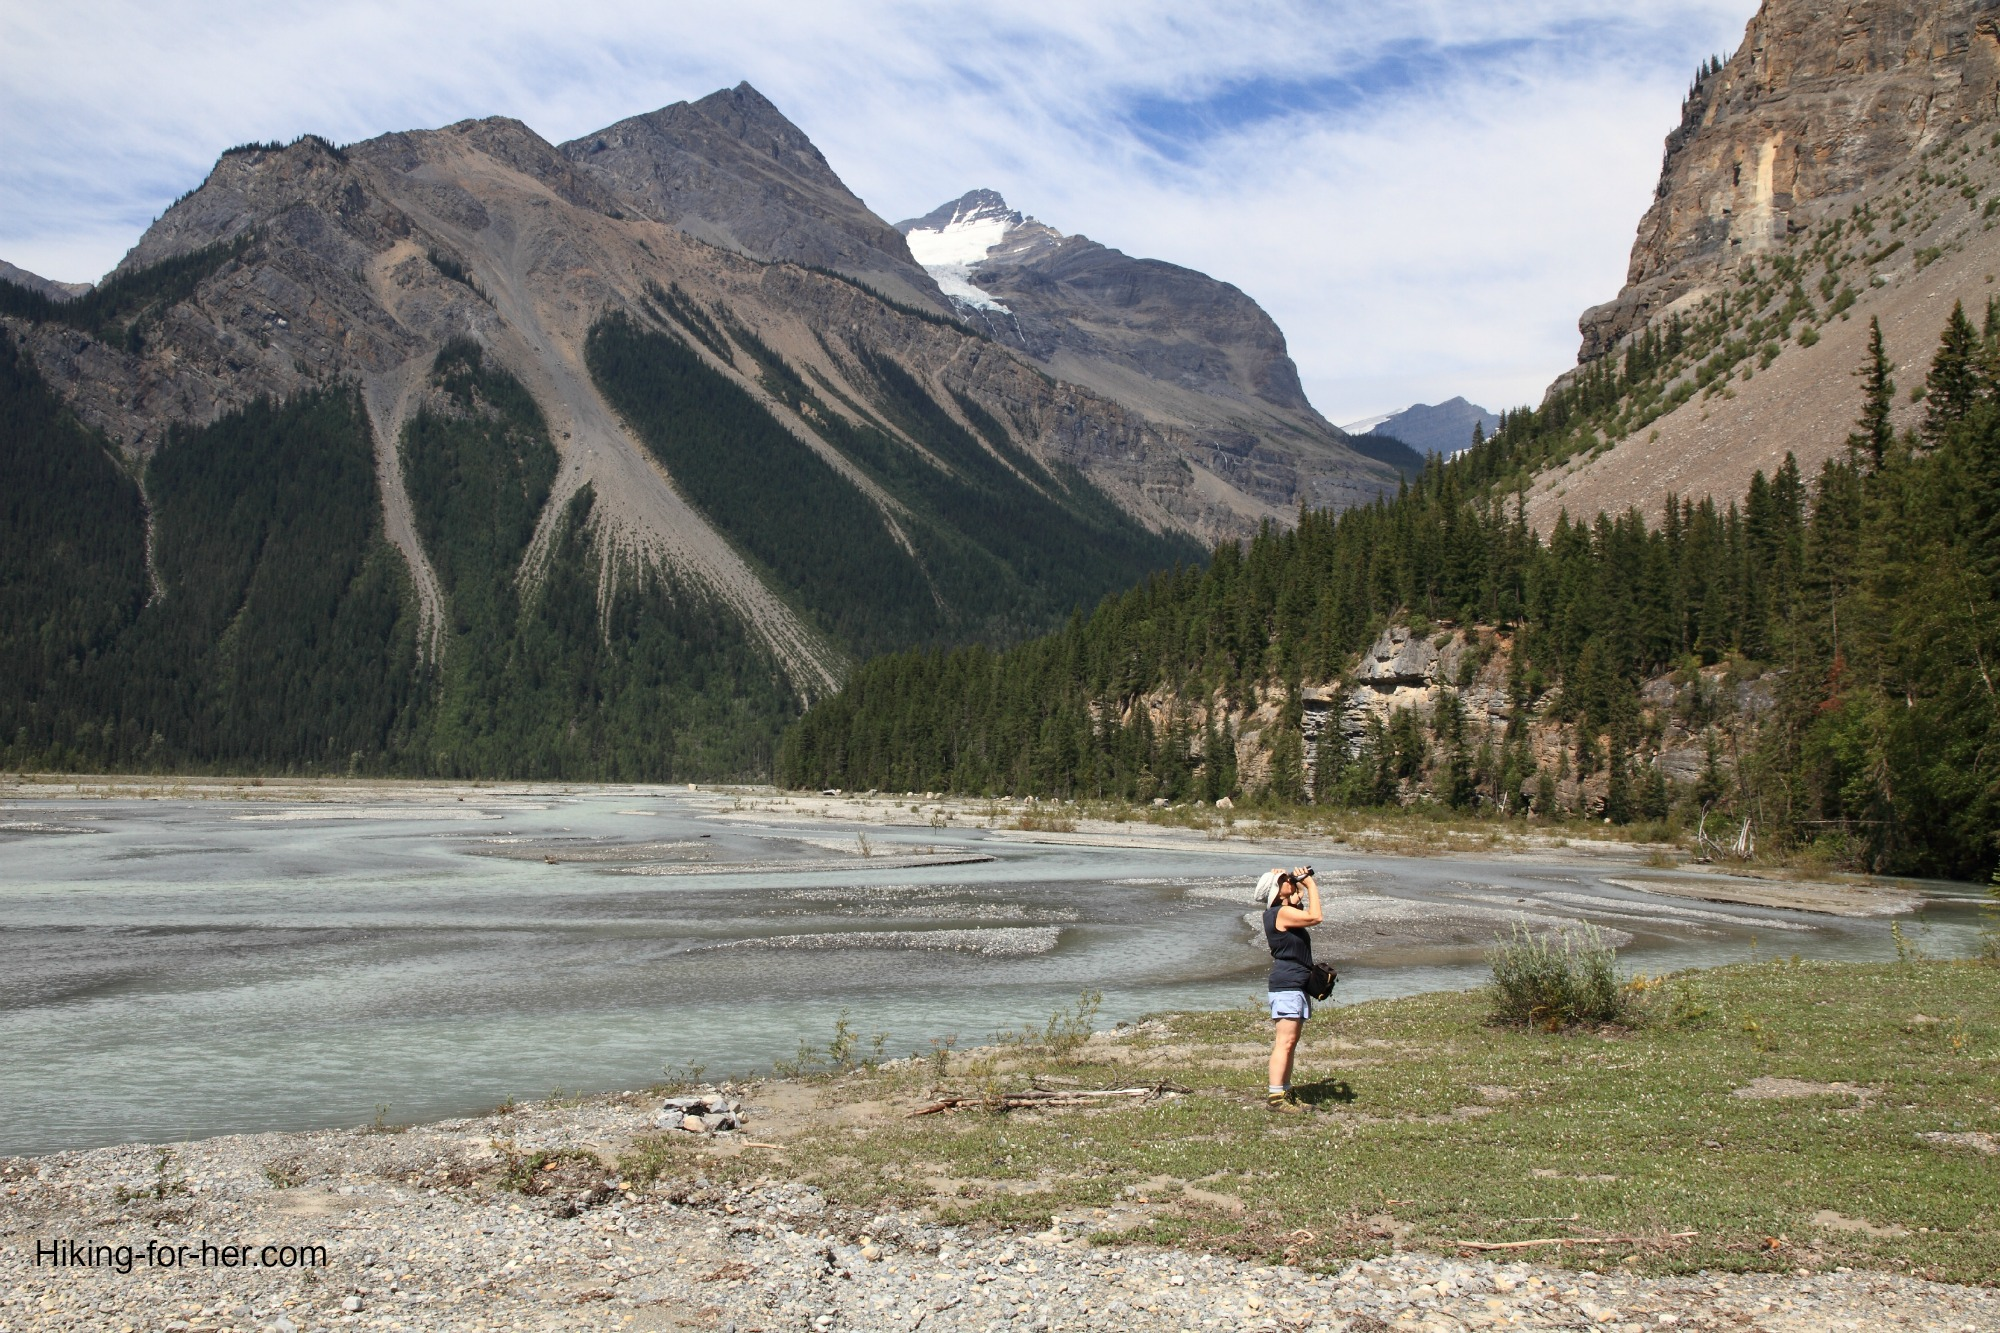 Female hiker taking photos at a lake surrounded by steep rugged mountains